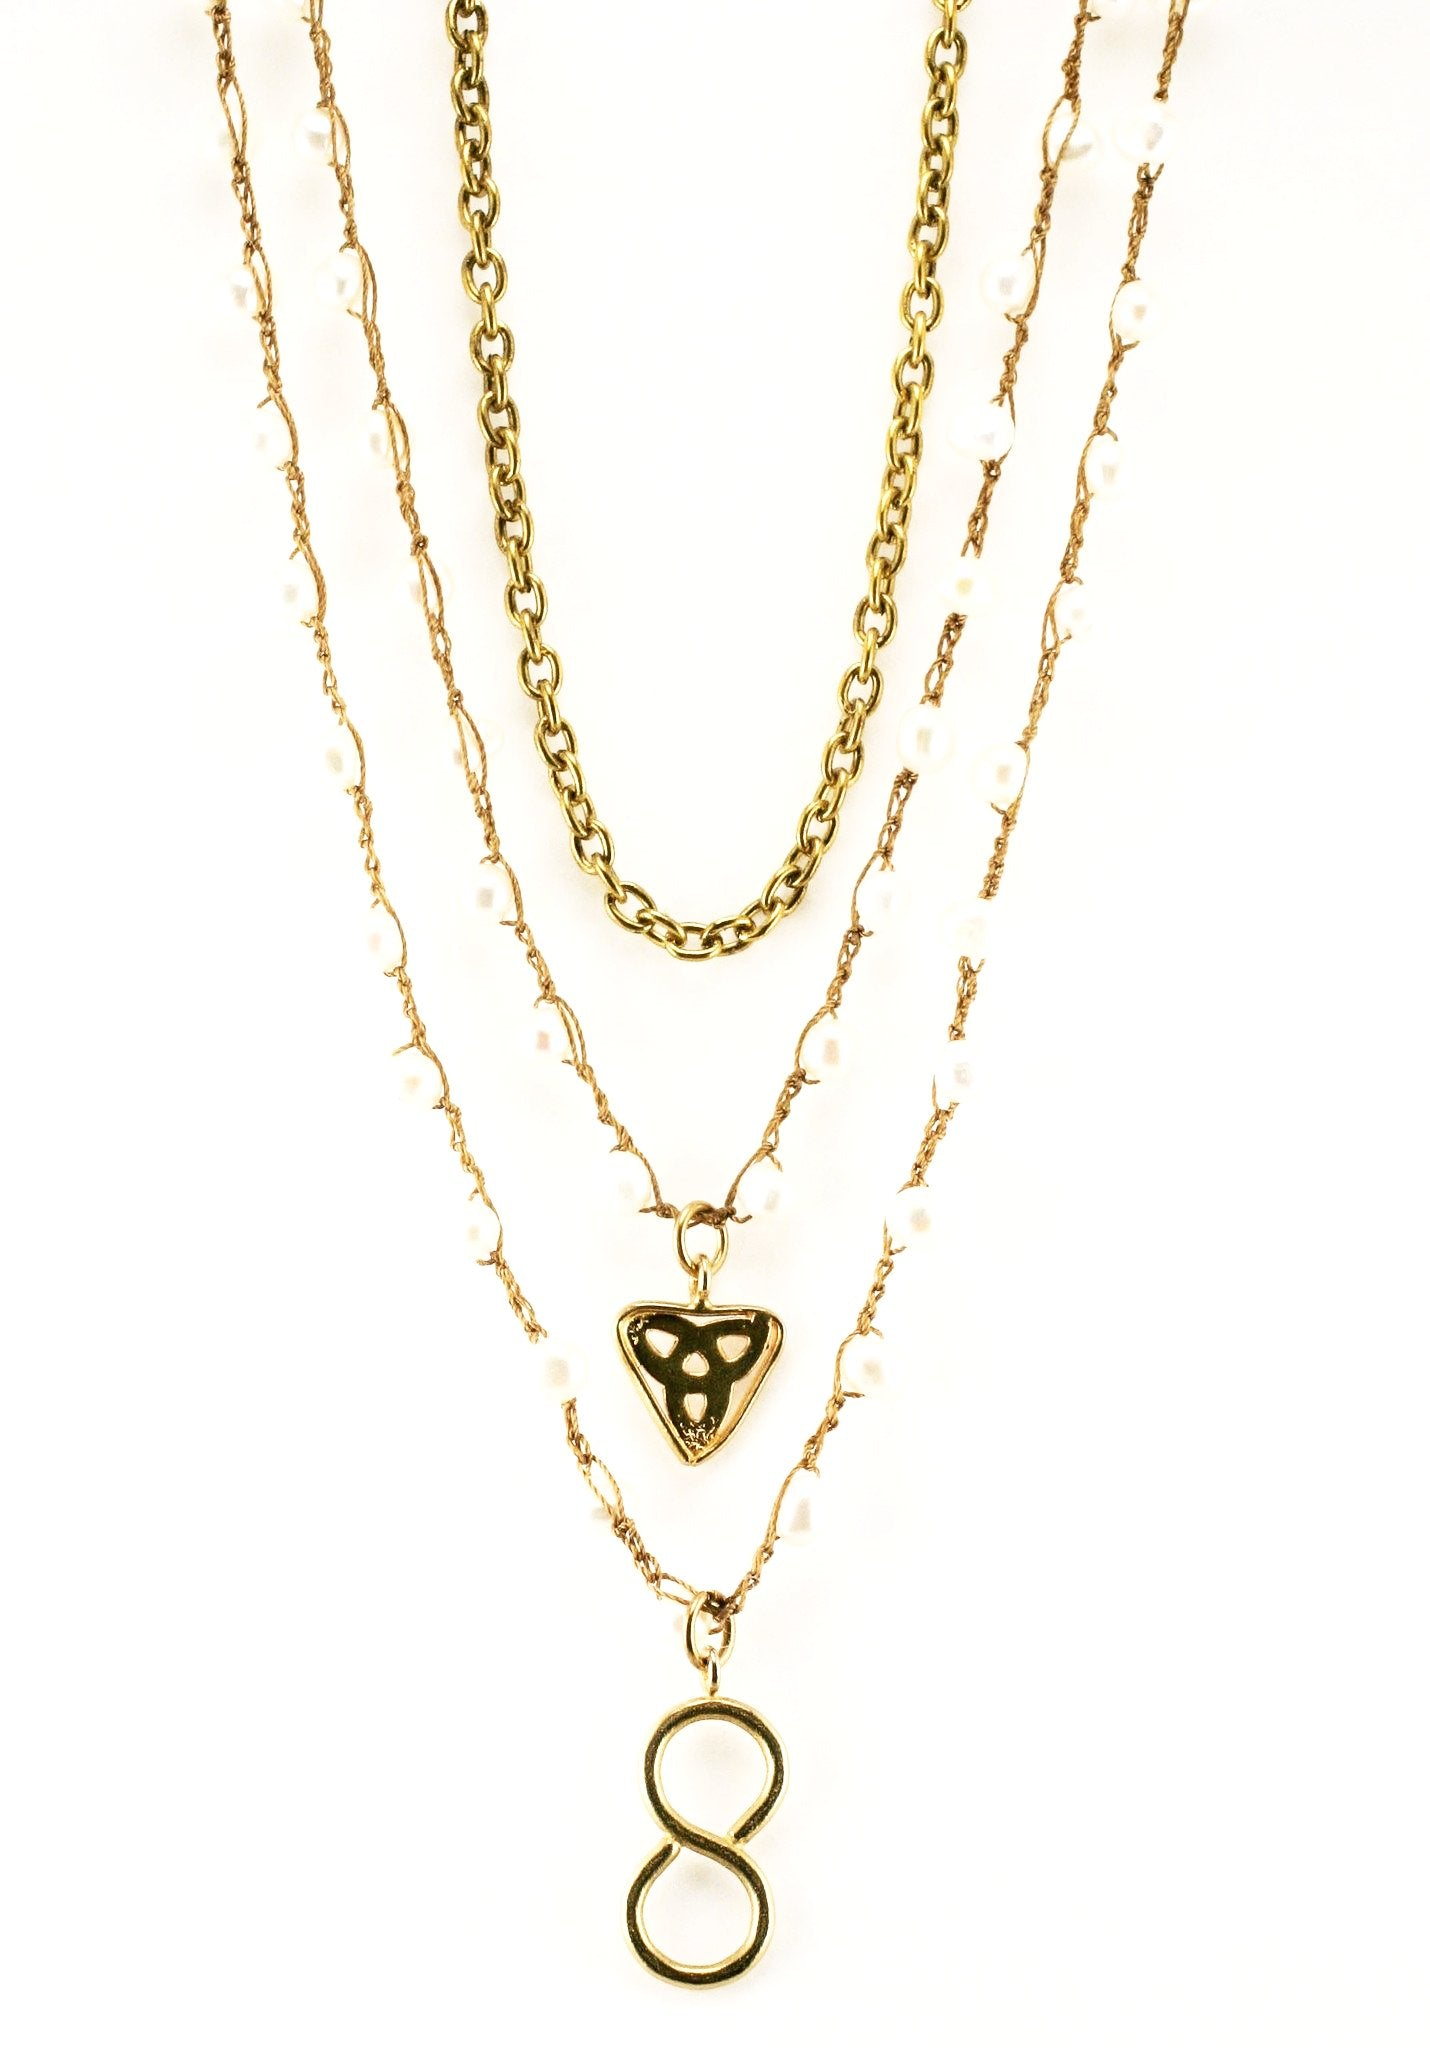 sister necklaces infinity necklace big lil tzaro chains original sis heart jewelry fullxfull set products il